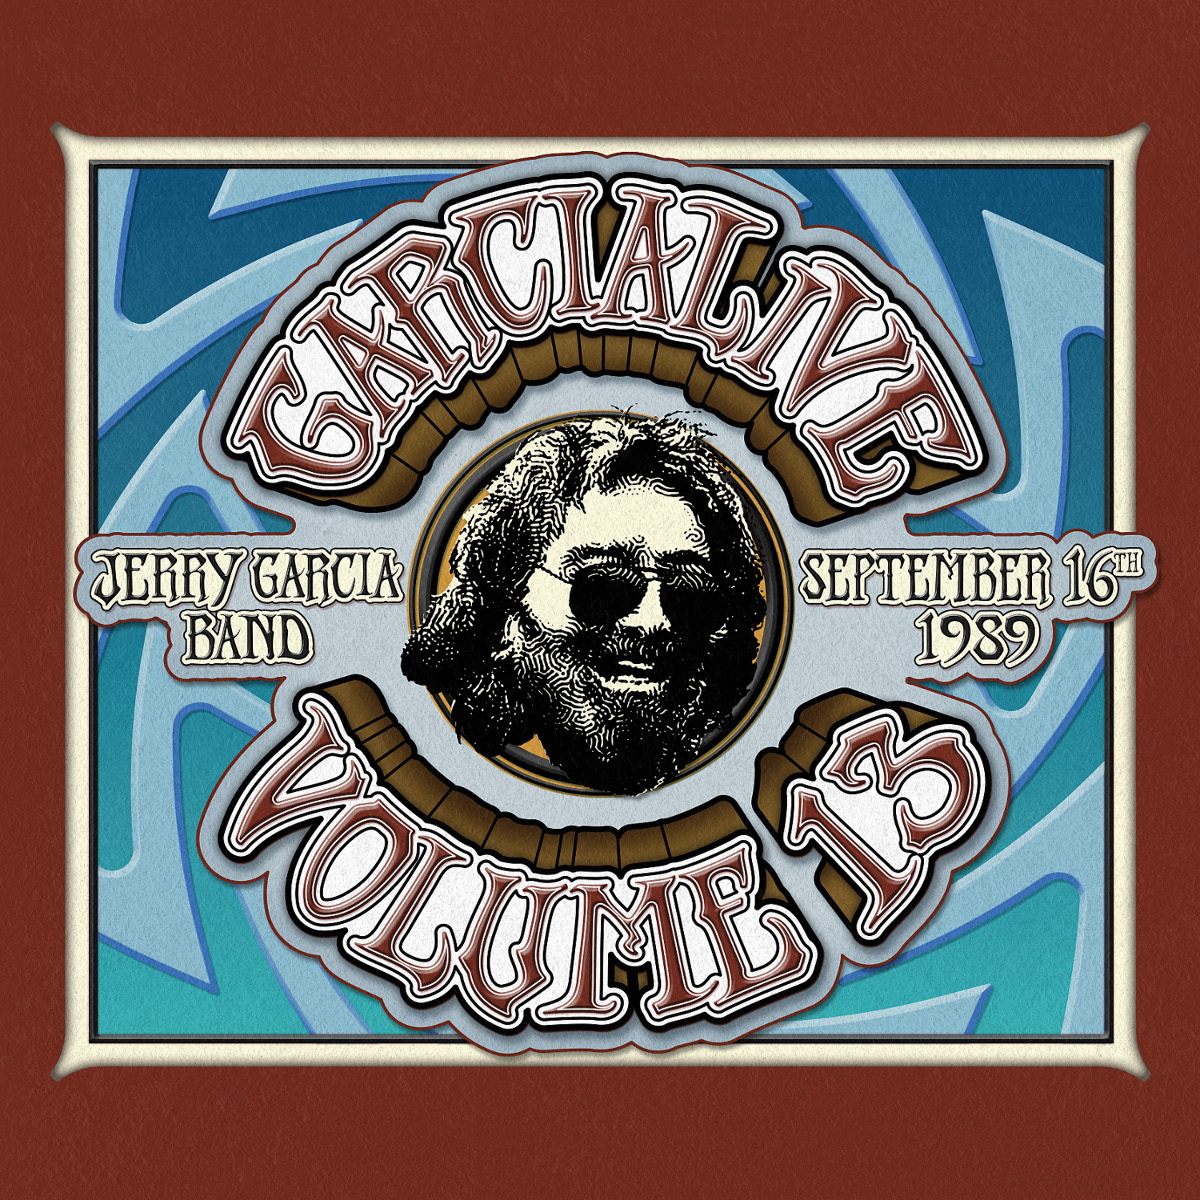 Jerry Garcia Band – GarciaLive Volume 13: 09/16/89 2-CD Set